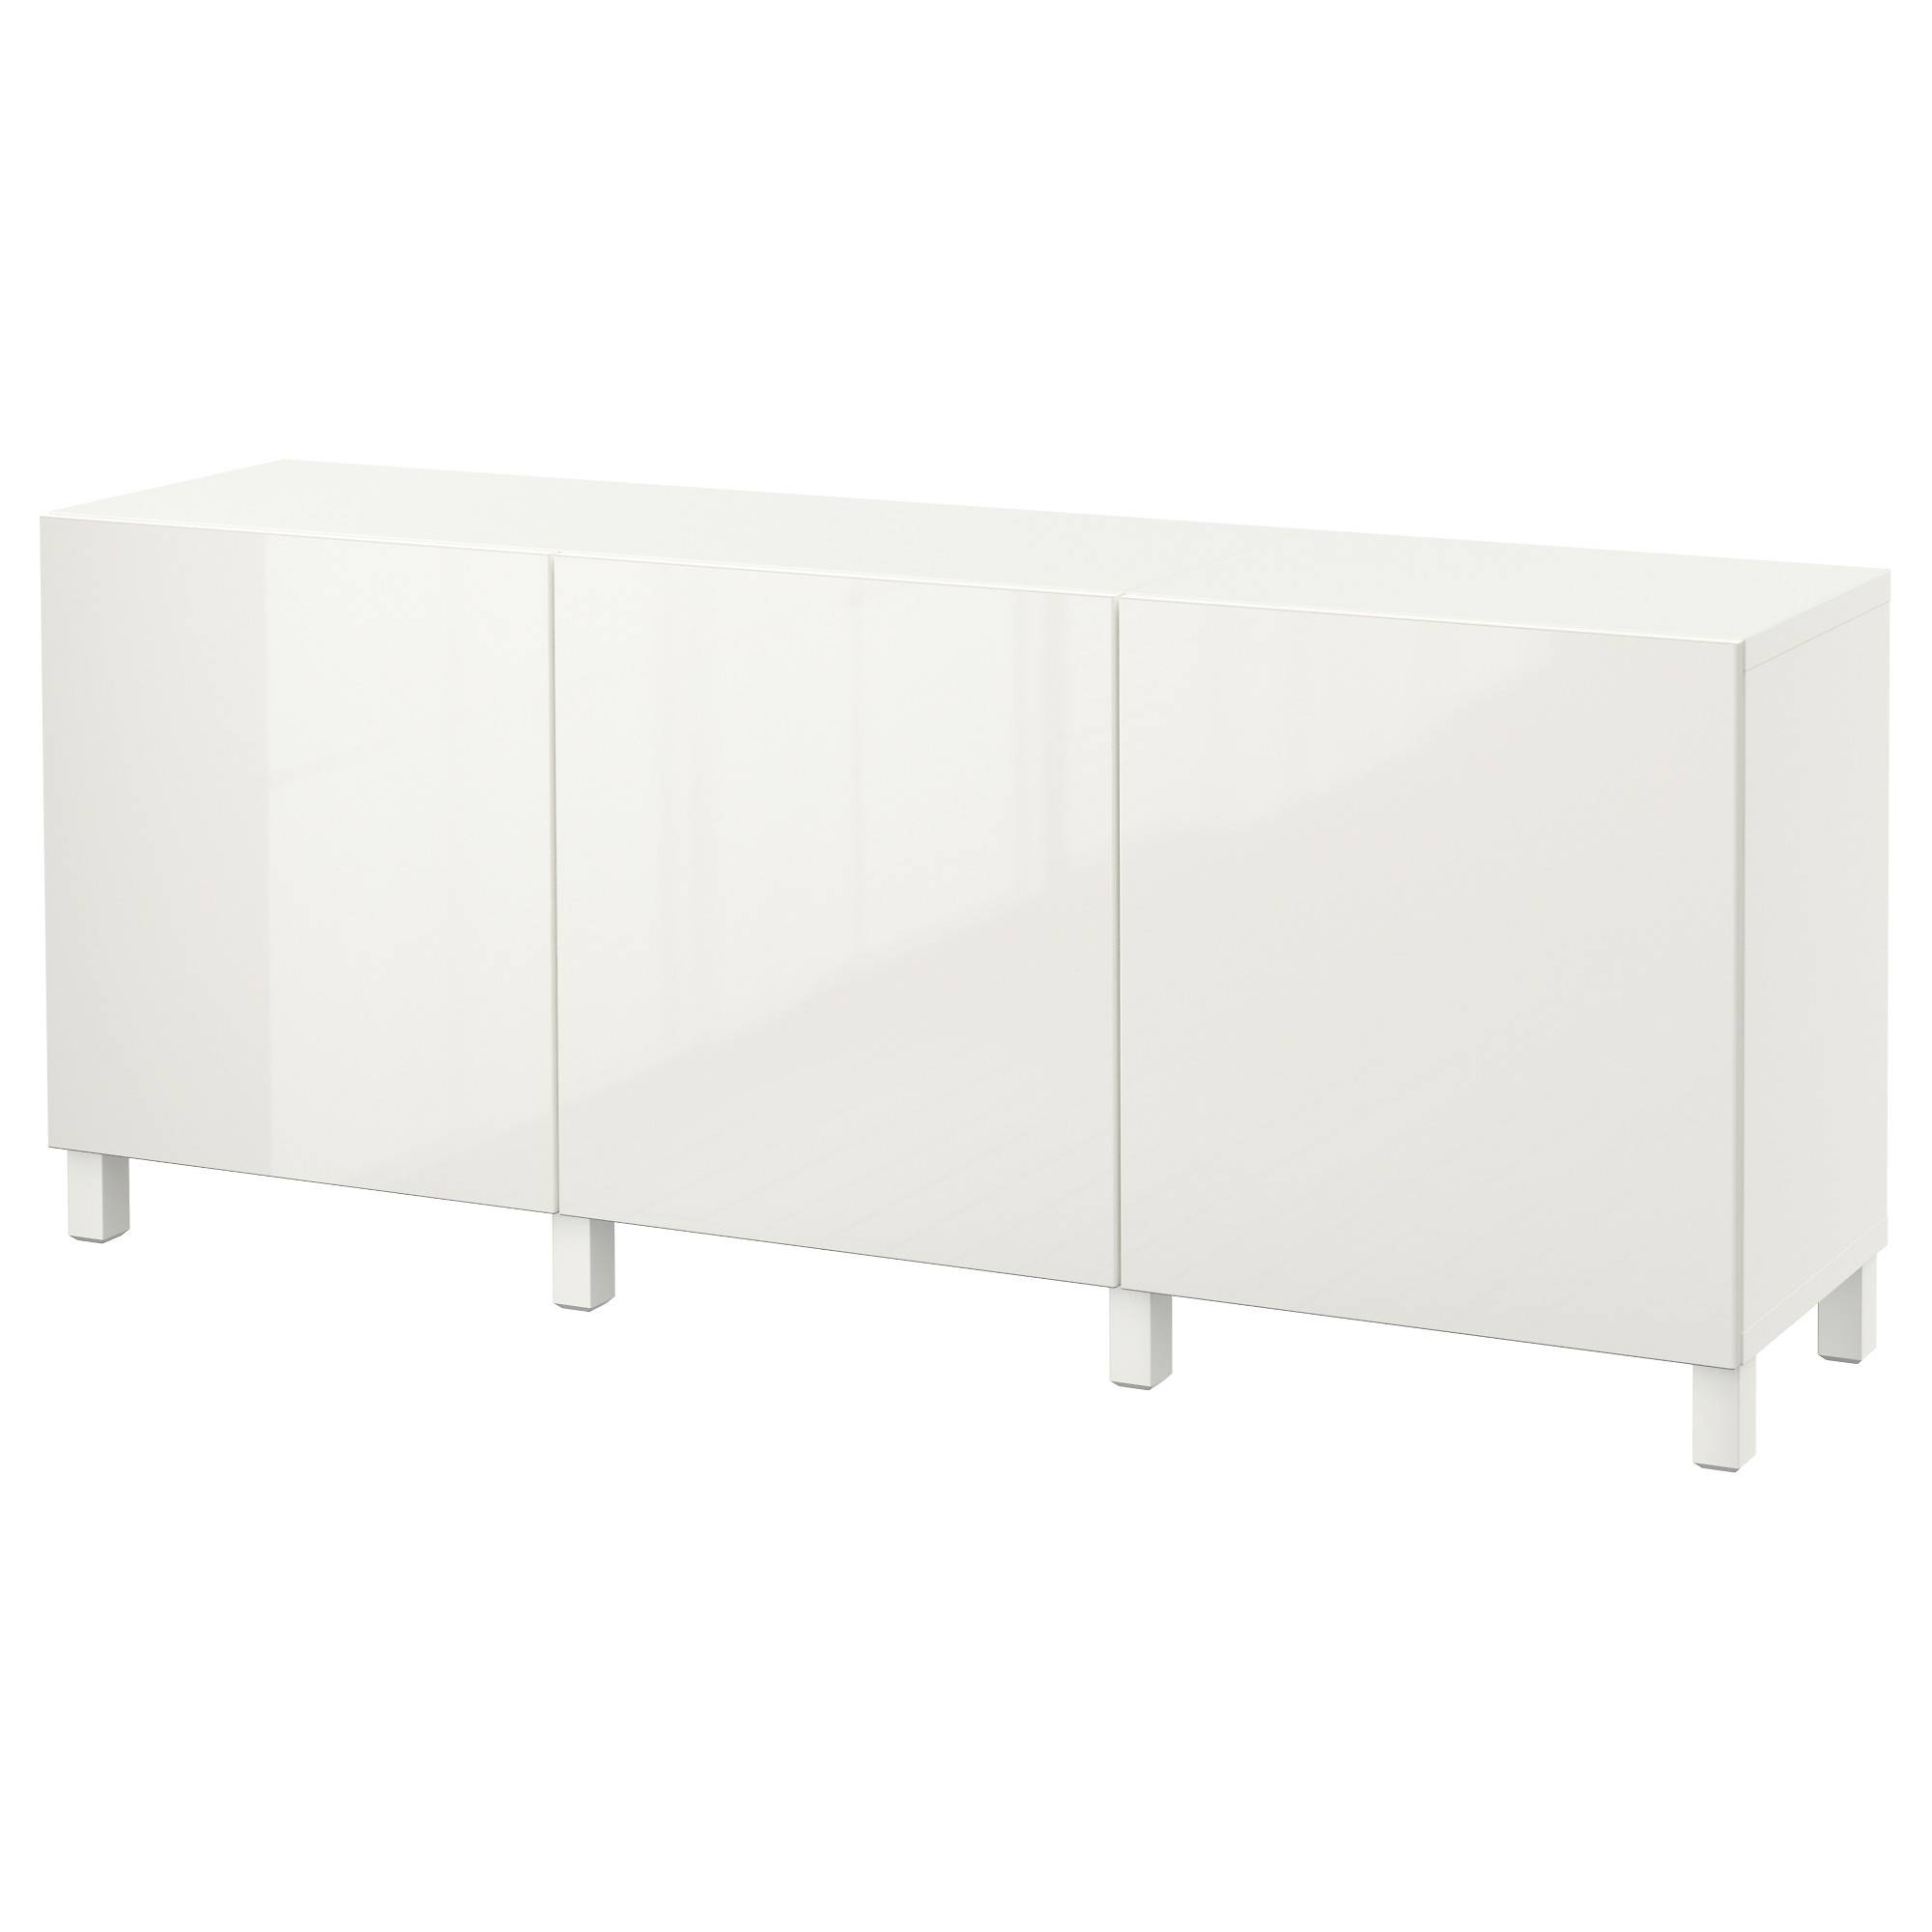 Bestå Storage Combination With Doors - White/selsviken High-Gloss throughout White High Gloss Sideboards (Image 2 of 30)